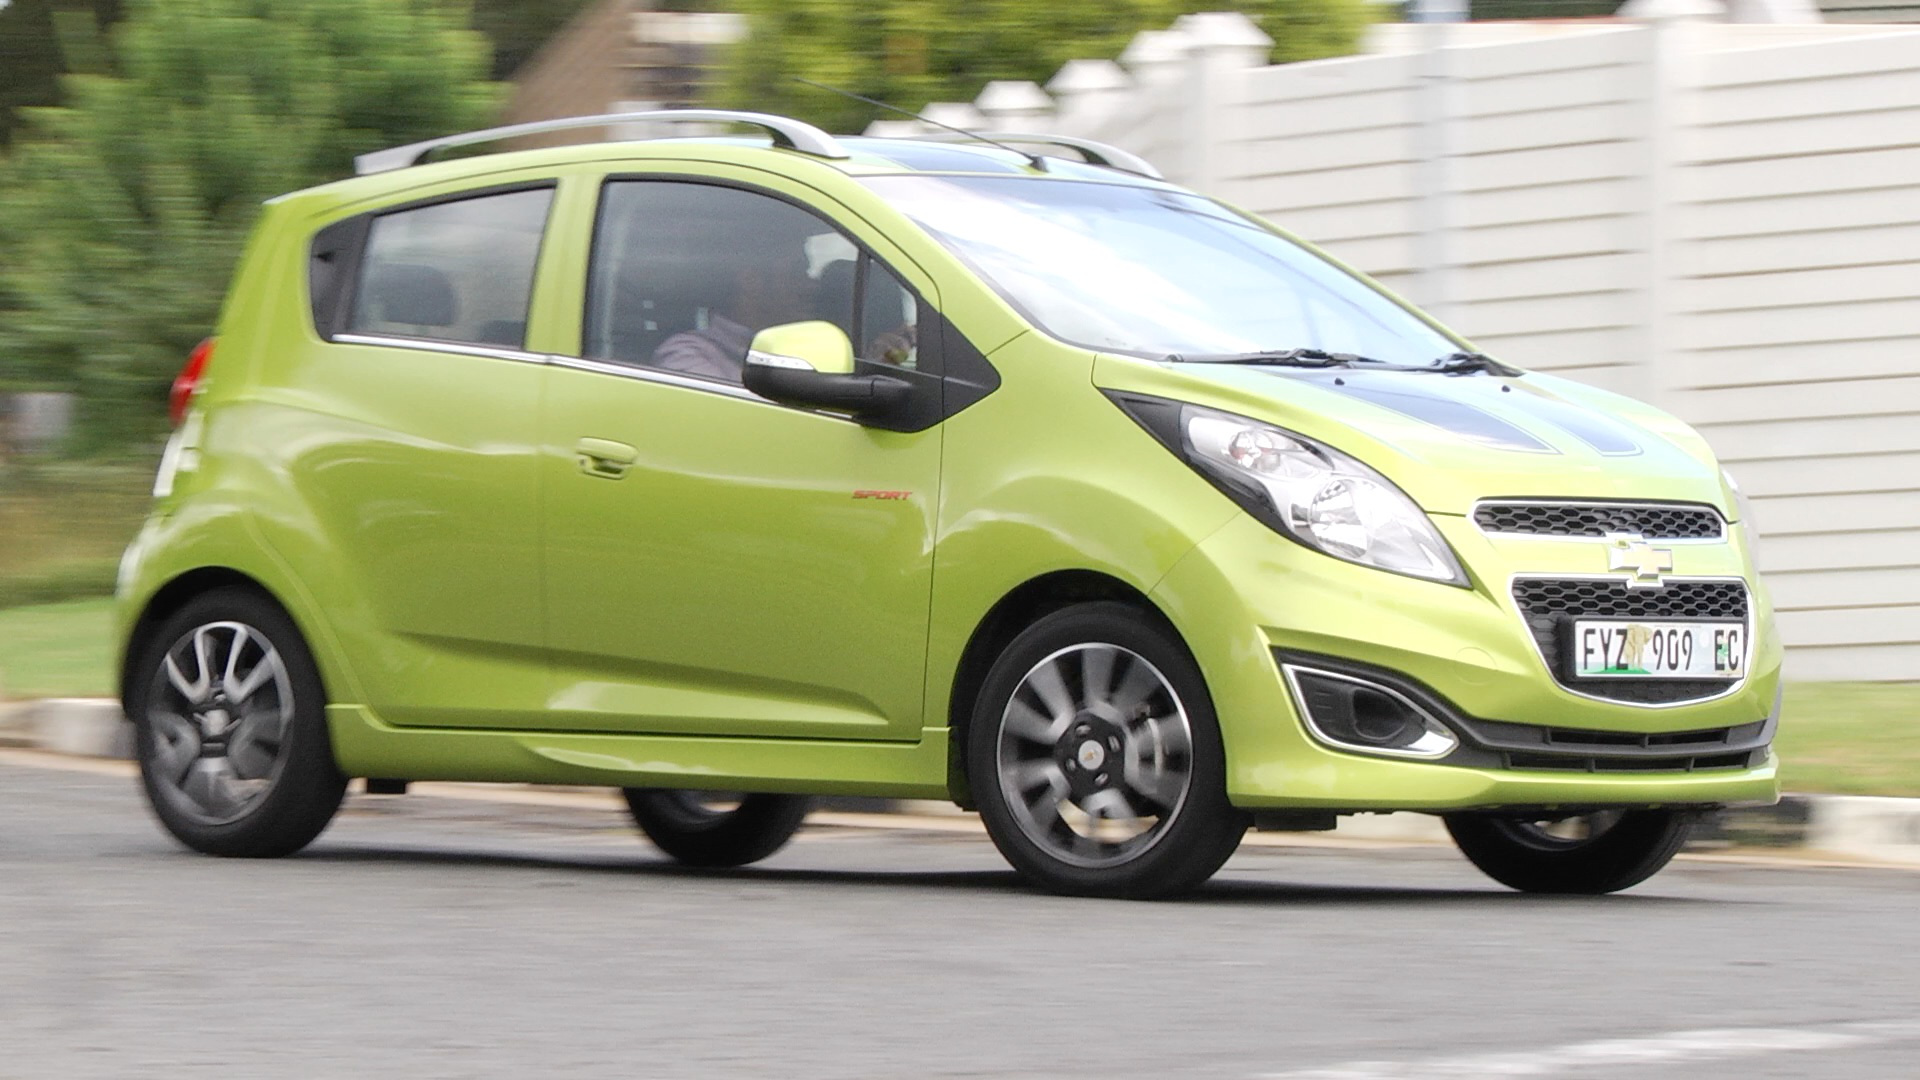 Chevrolet Spark LT (2014): New Car Review